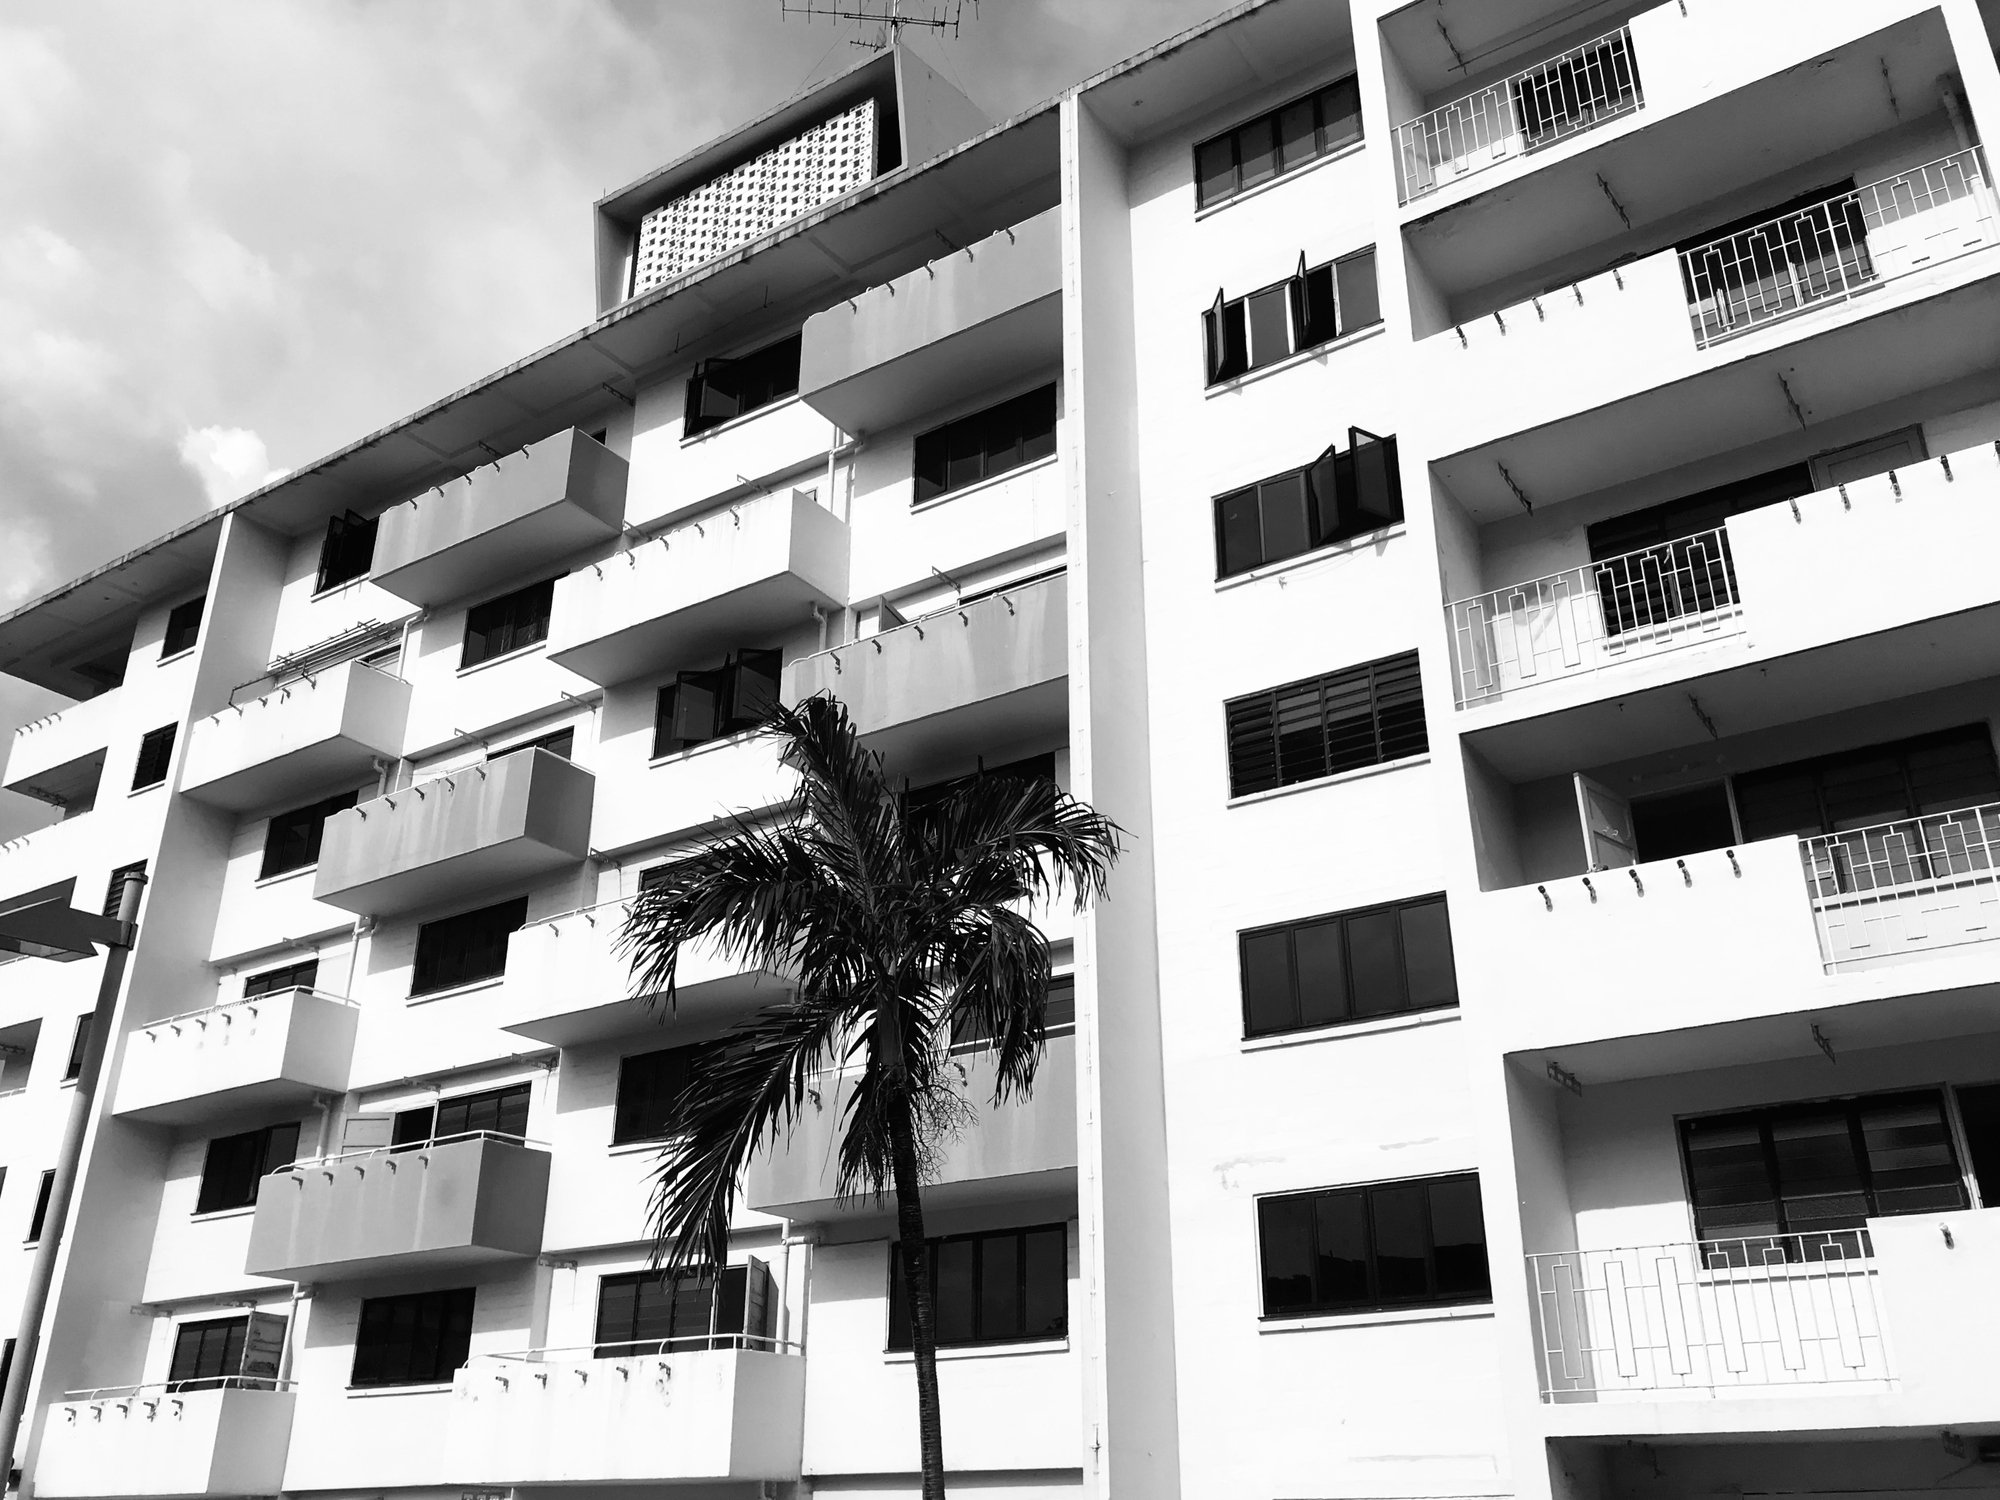 Black and white photo of old HDB flats